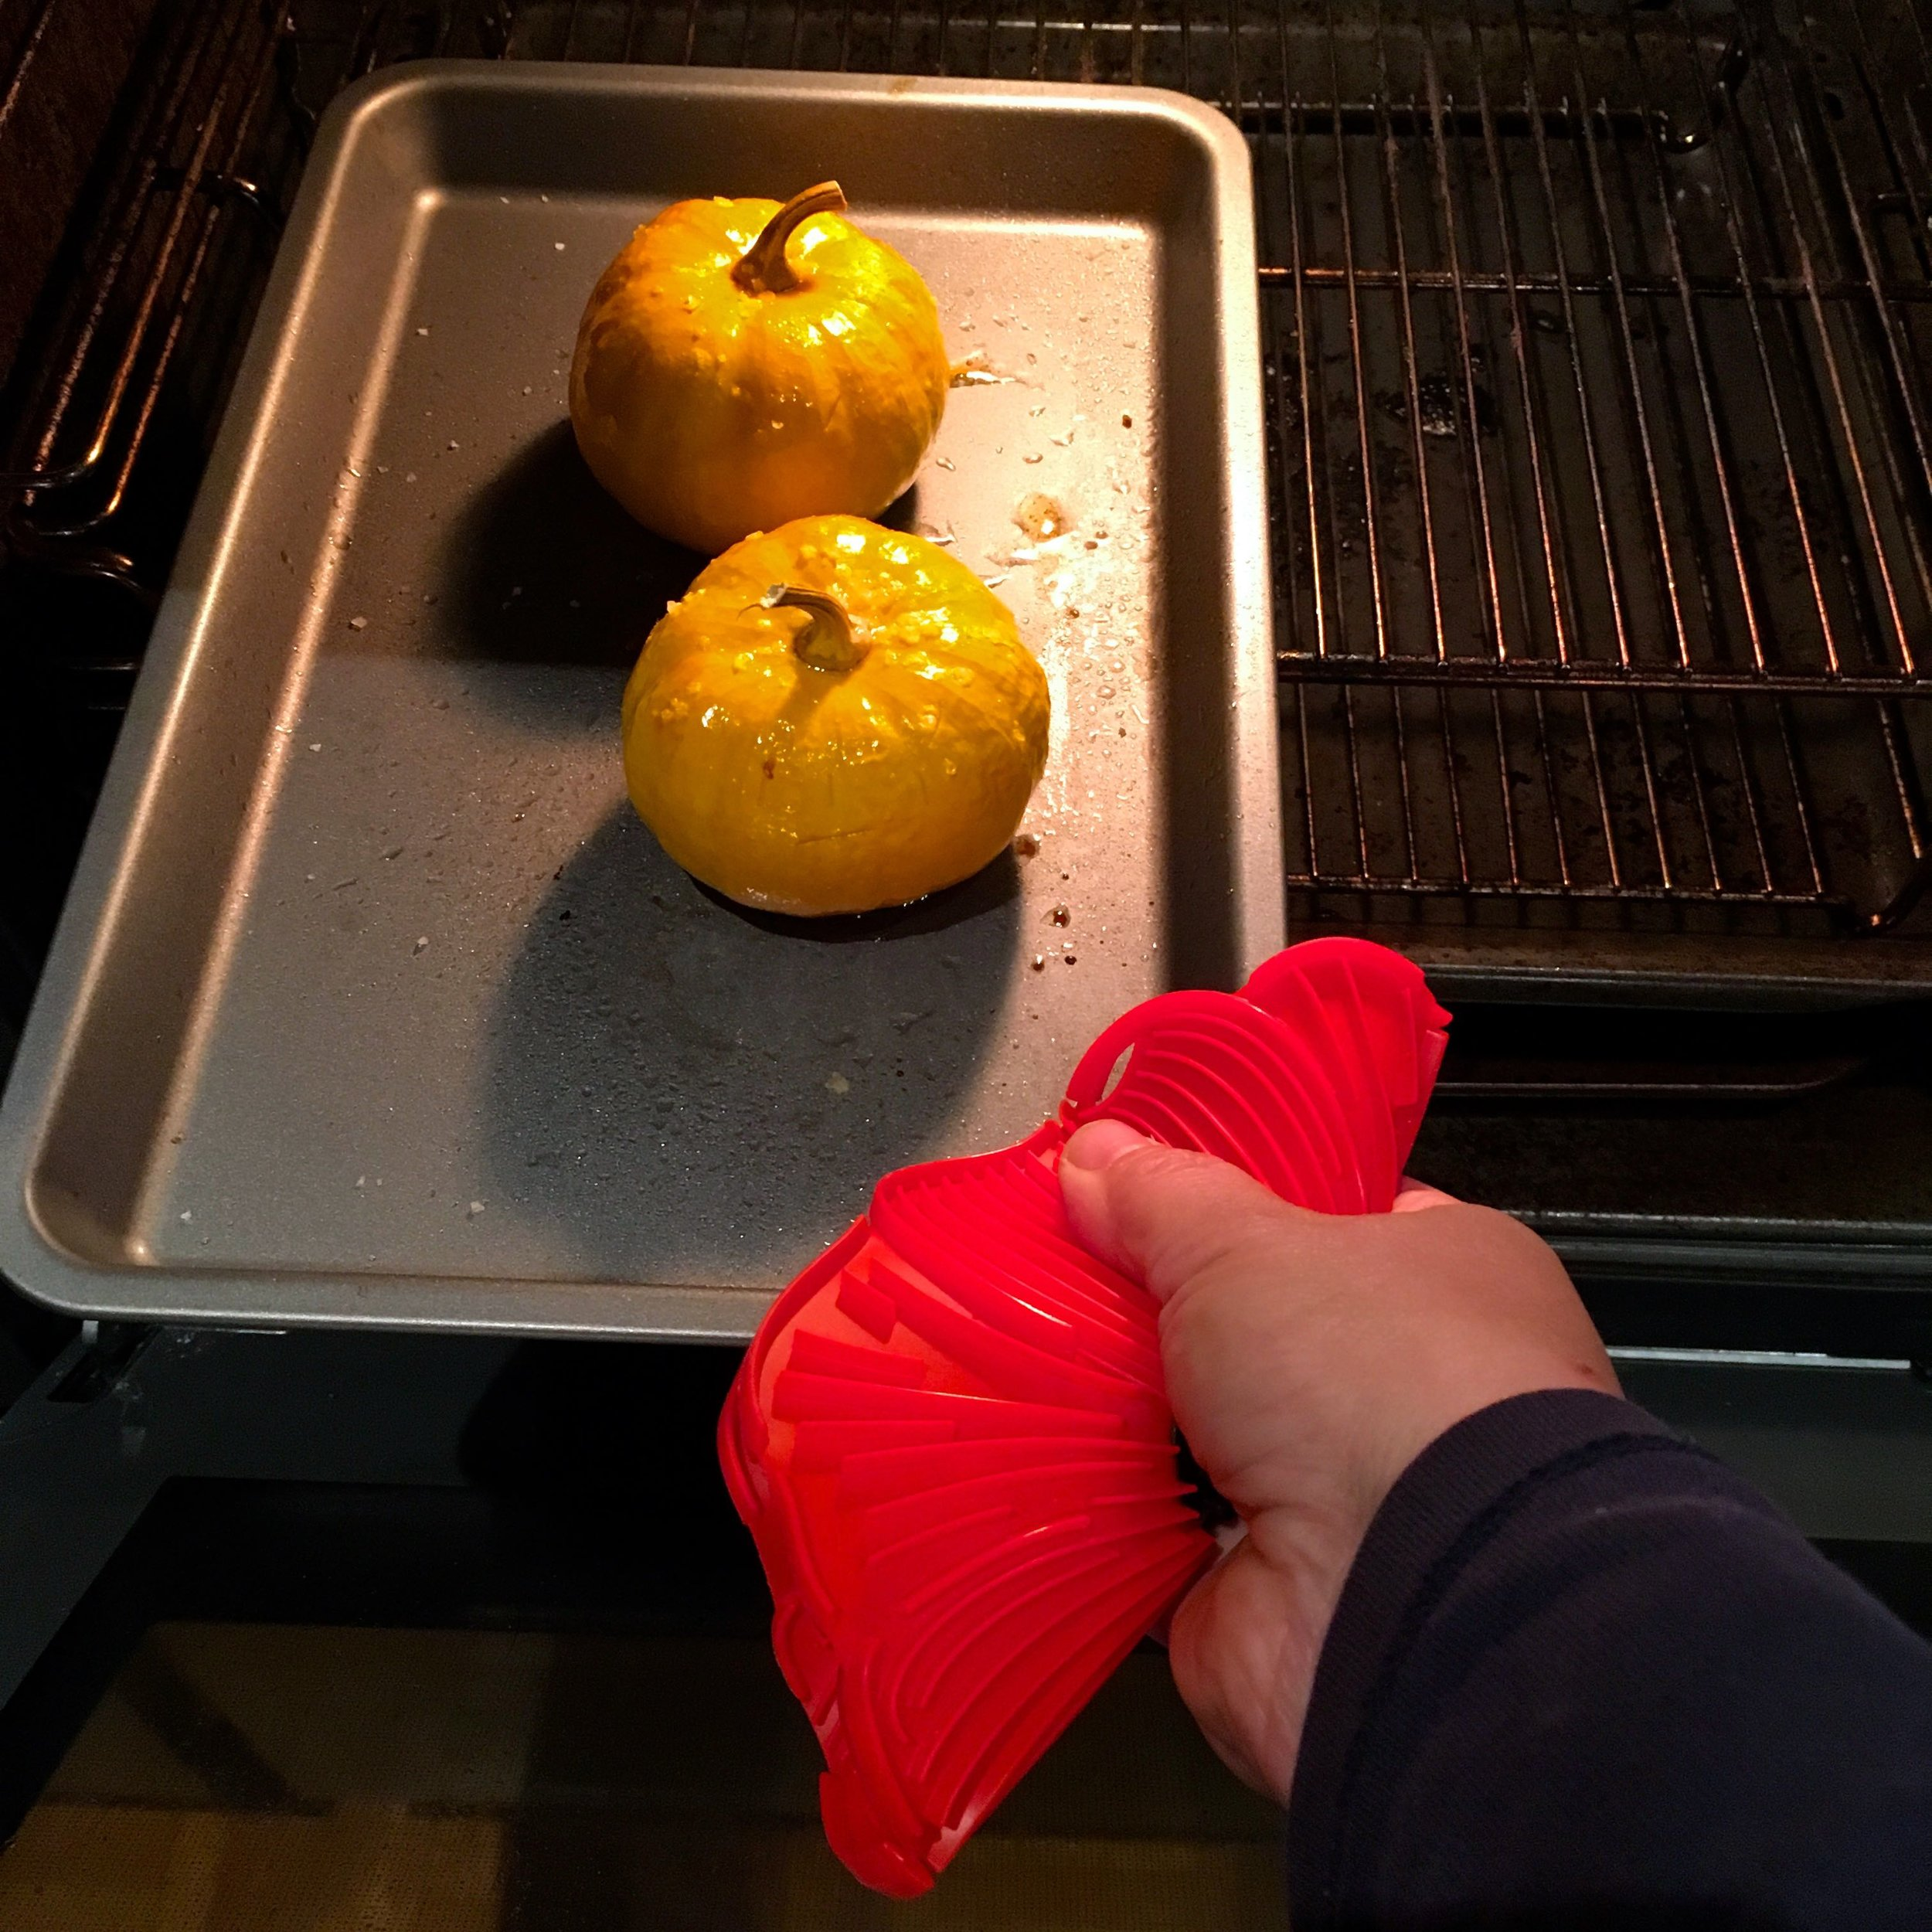 This charles viancin poppy silicone trivet also doubles up to get things out of the oven